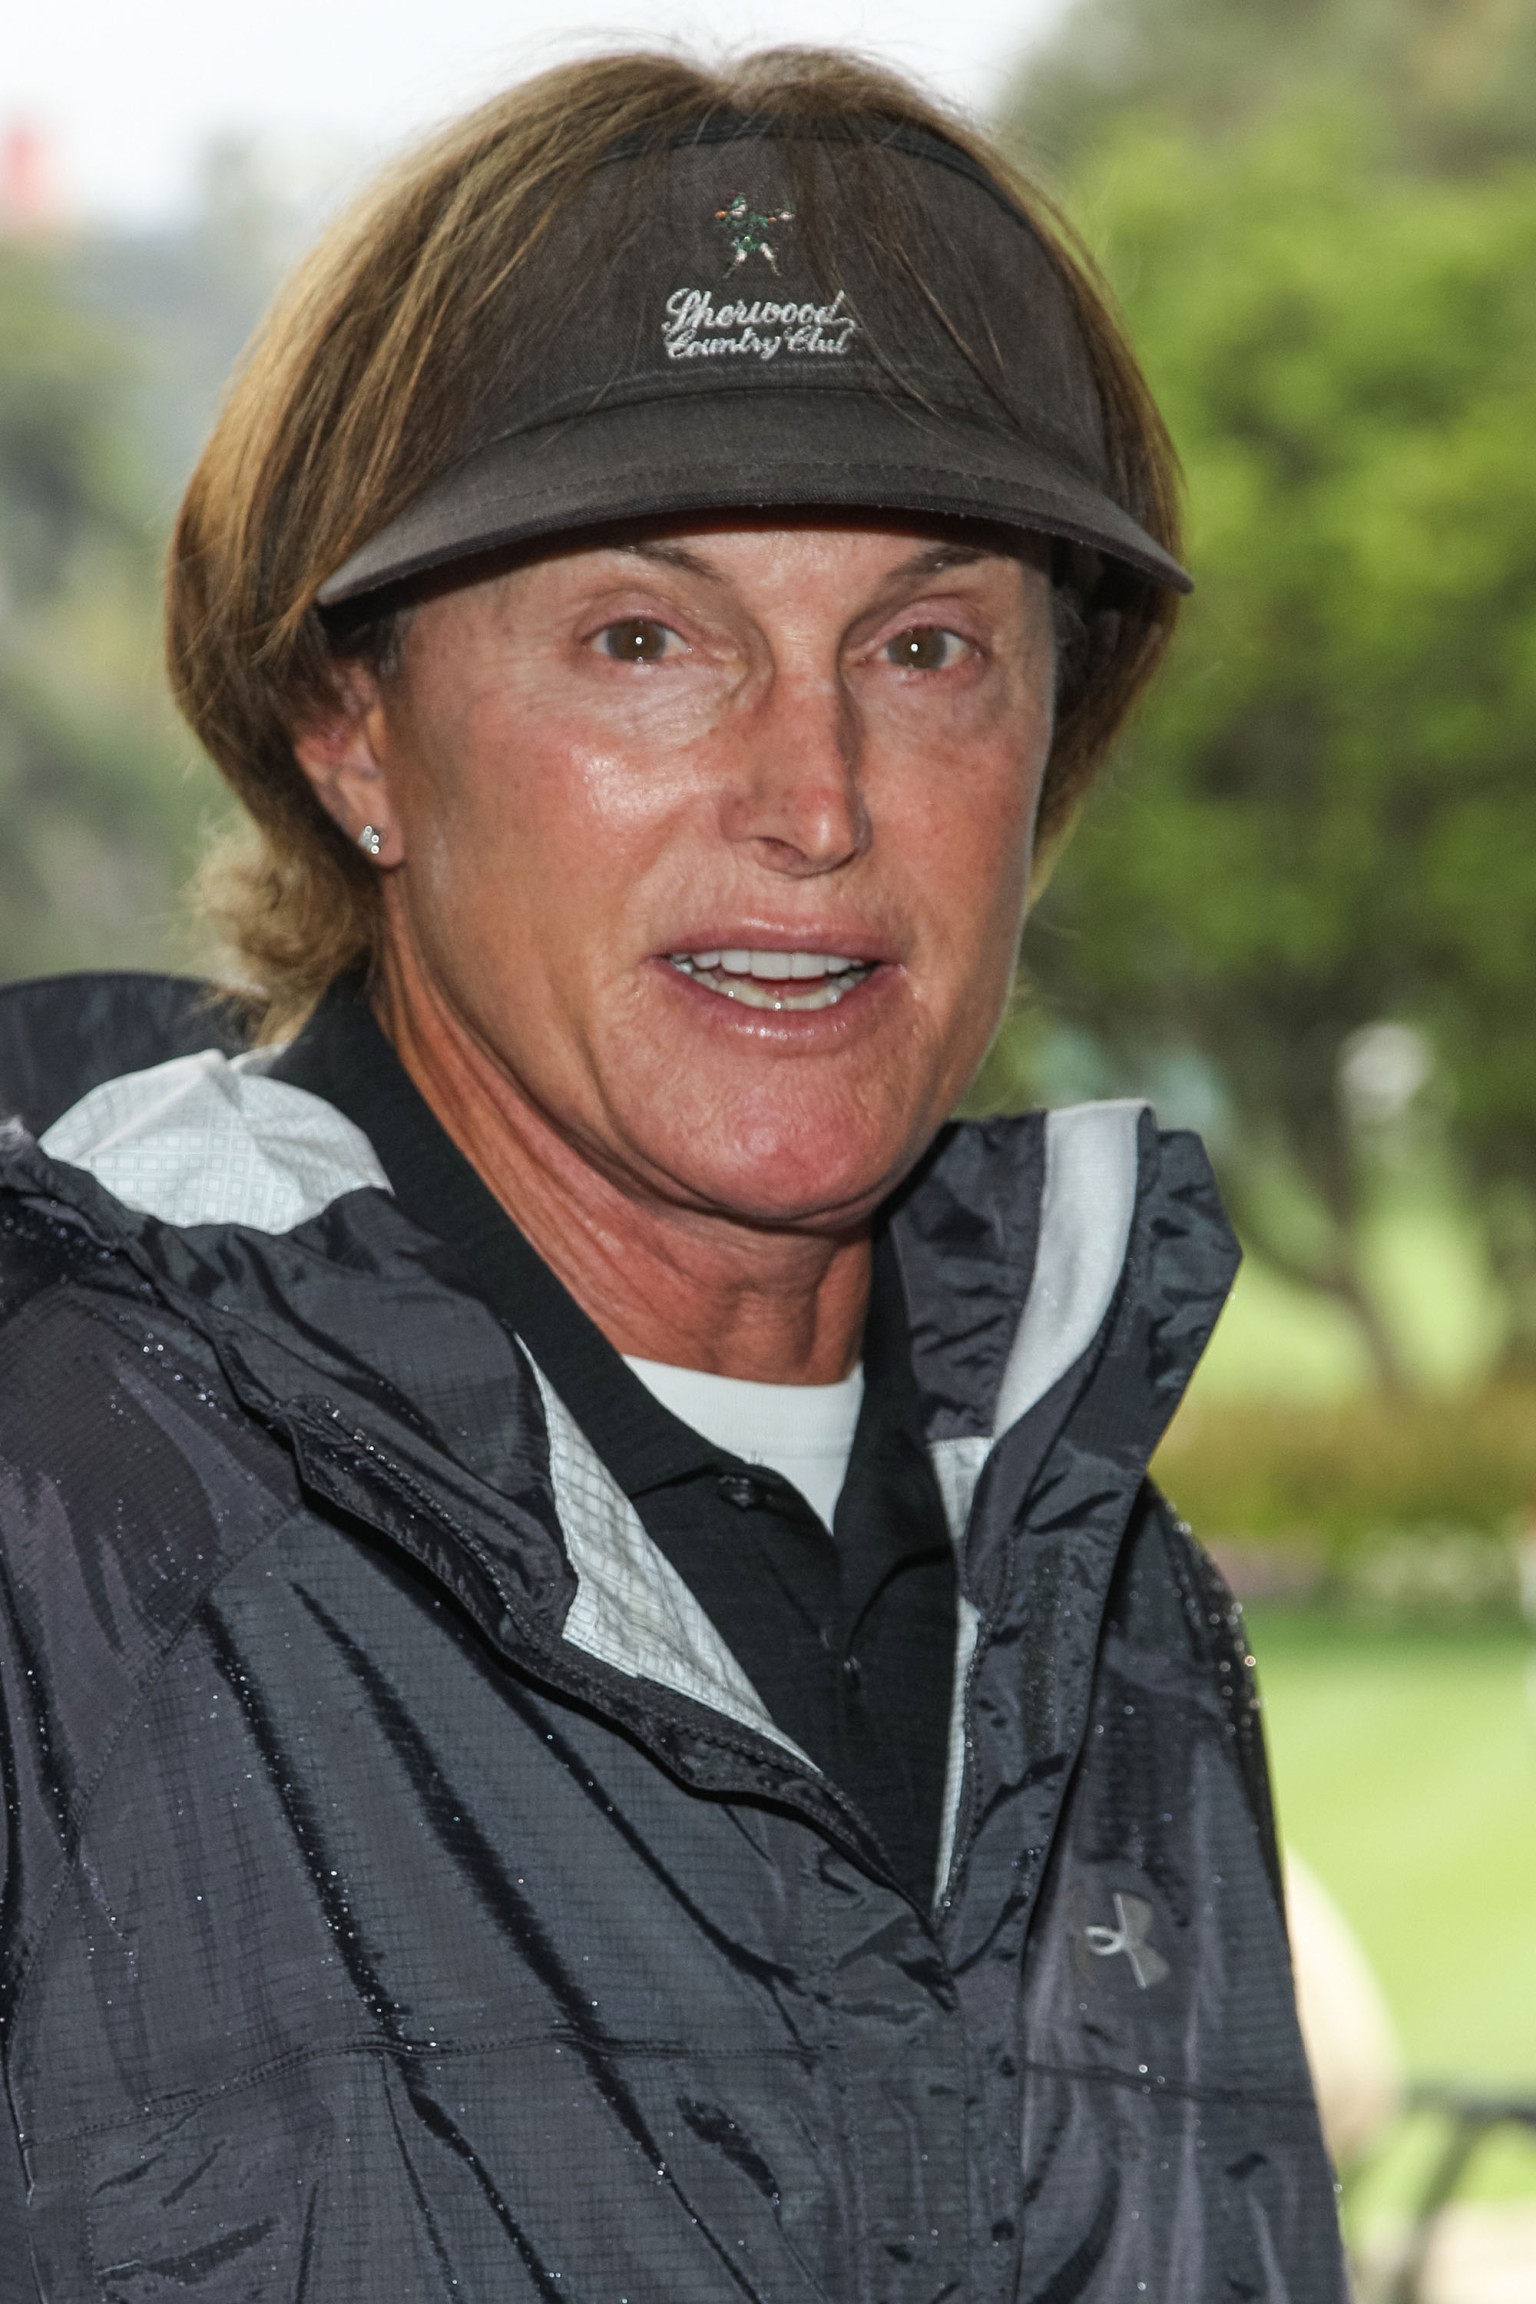 https://i0.wp.com/i.huffpost.com/gen/1222935/thumbs/o-BRUCE-JENNER-UNHAPPY-facebook.jpg